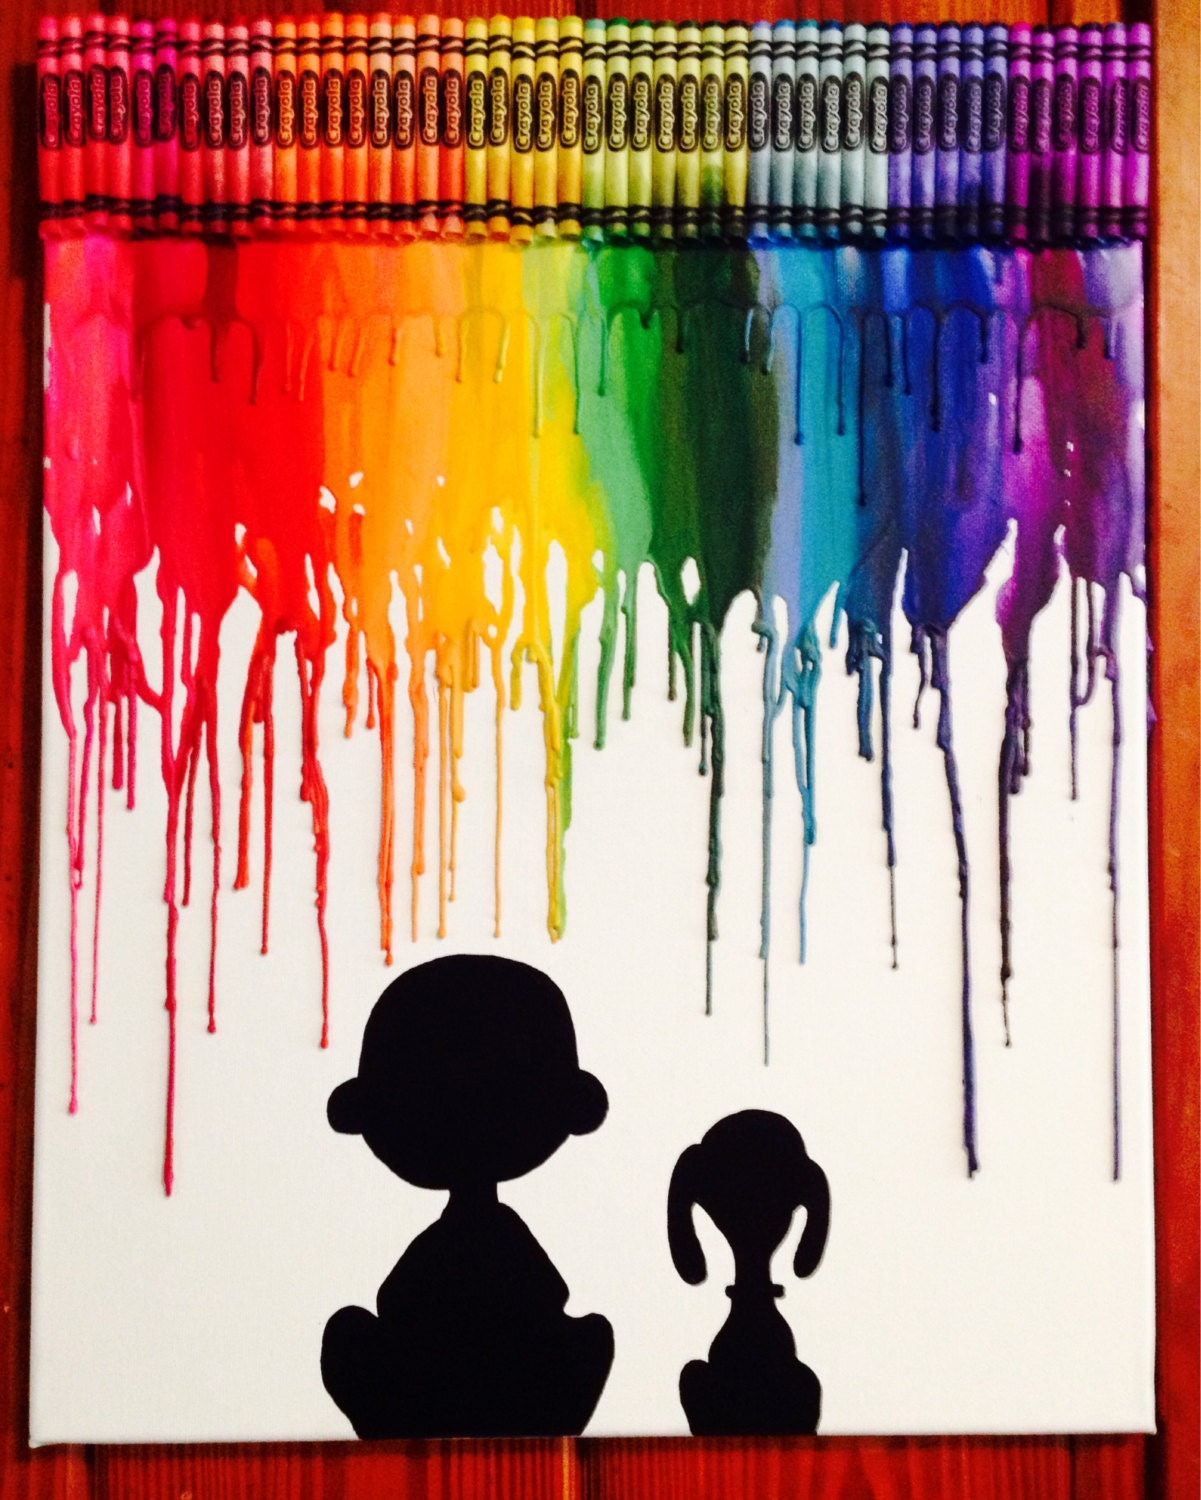 Charlie Brown And Snoopy Inspired Melted Crayon Art